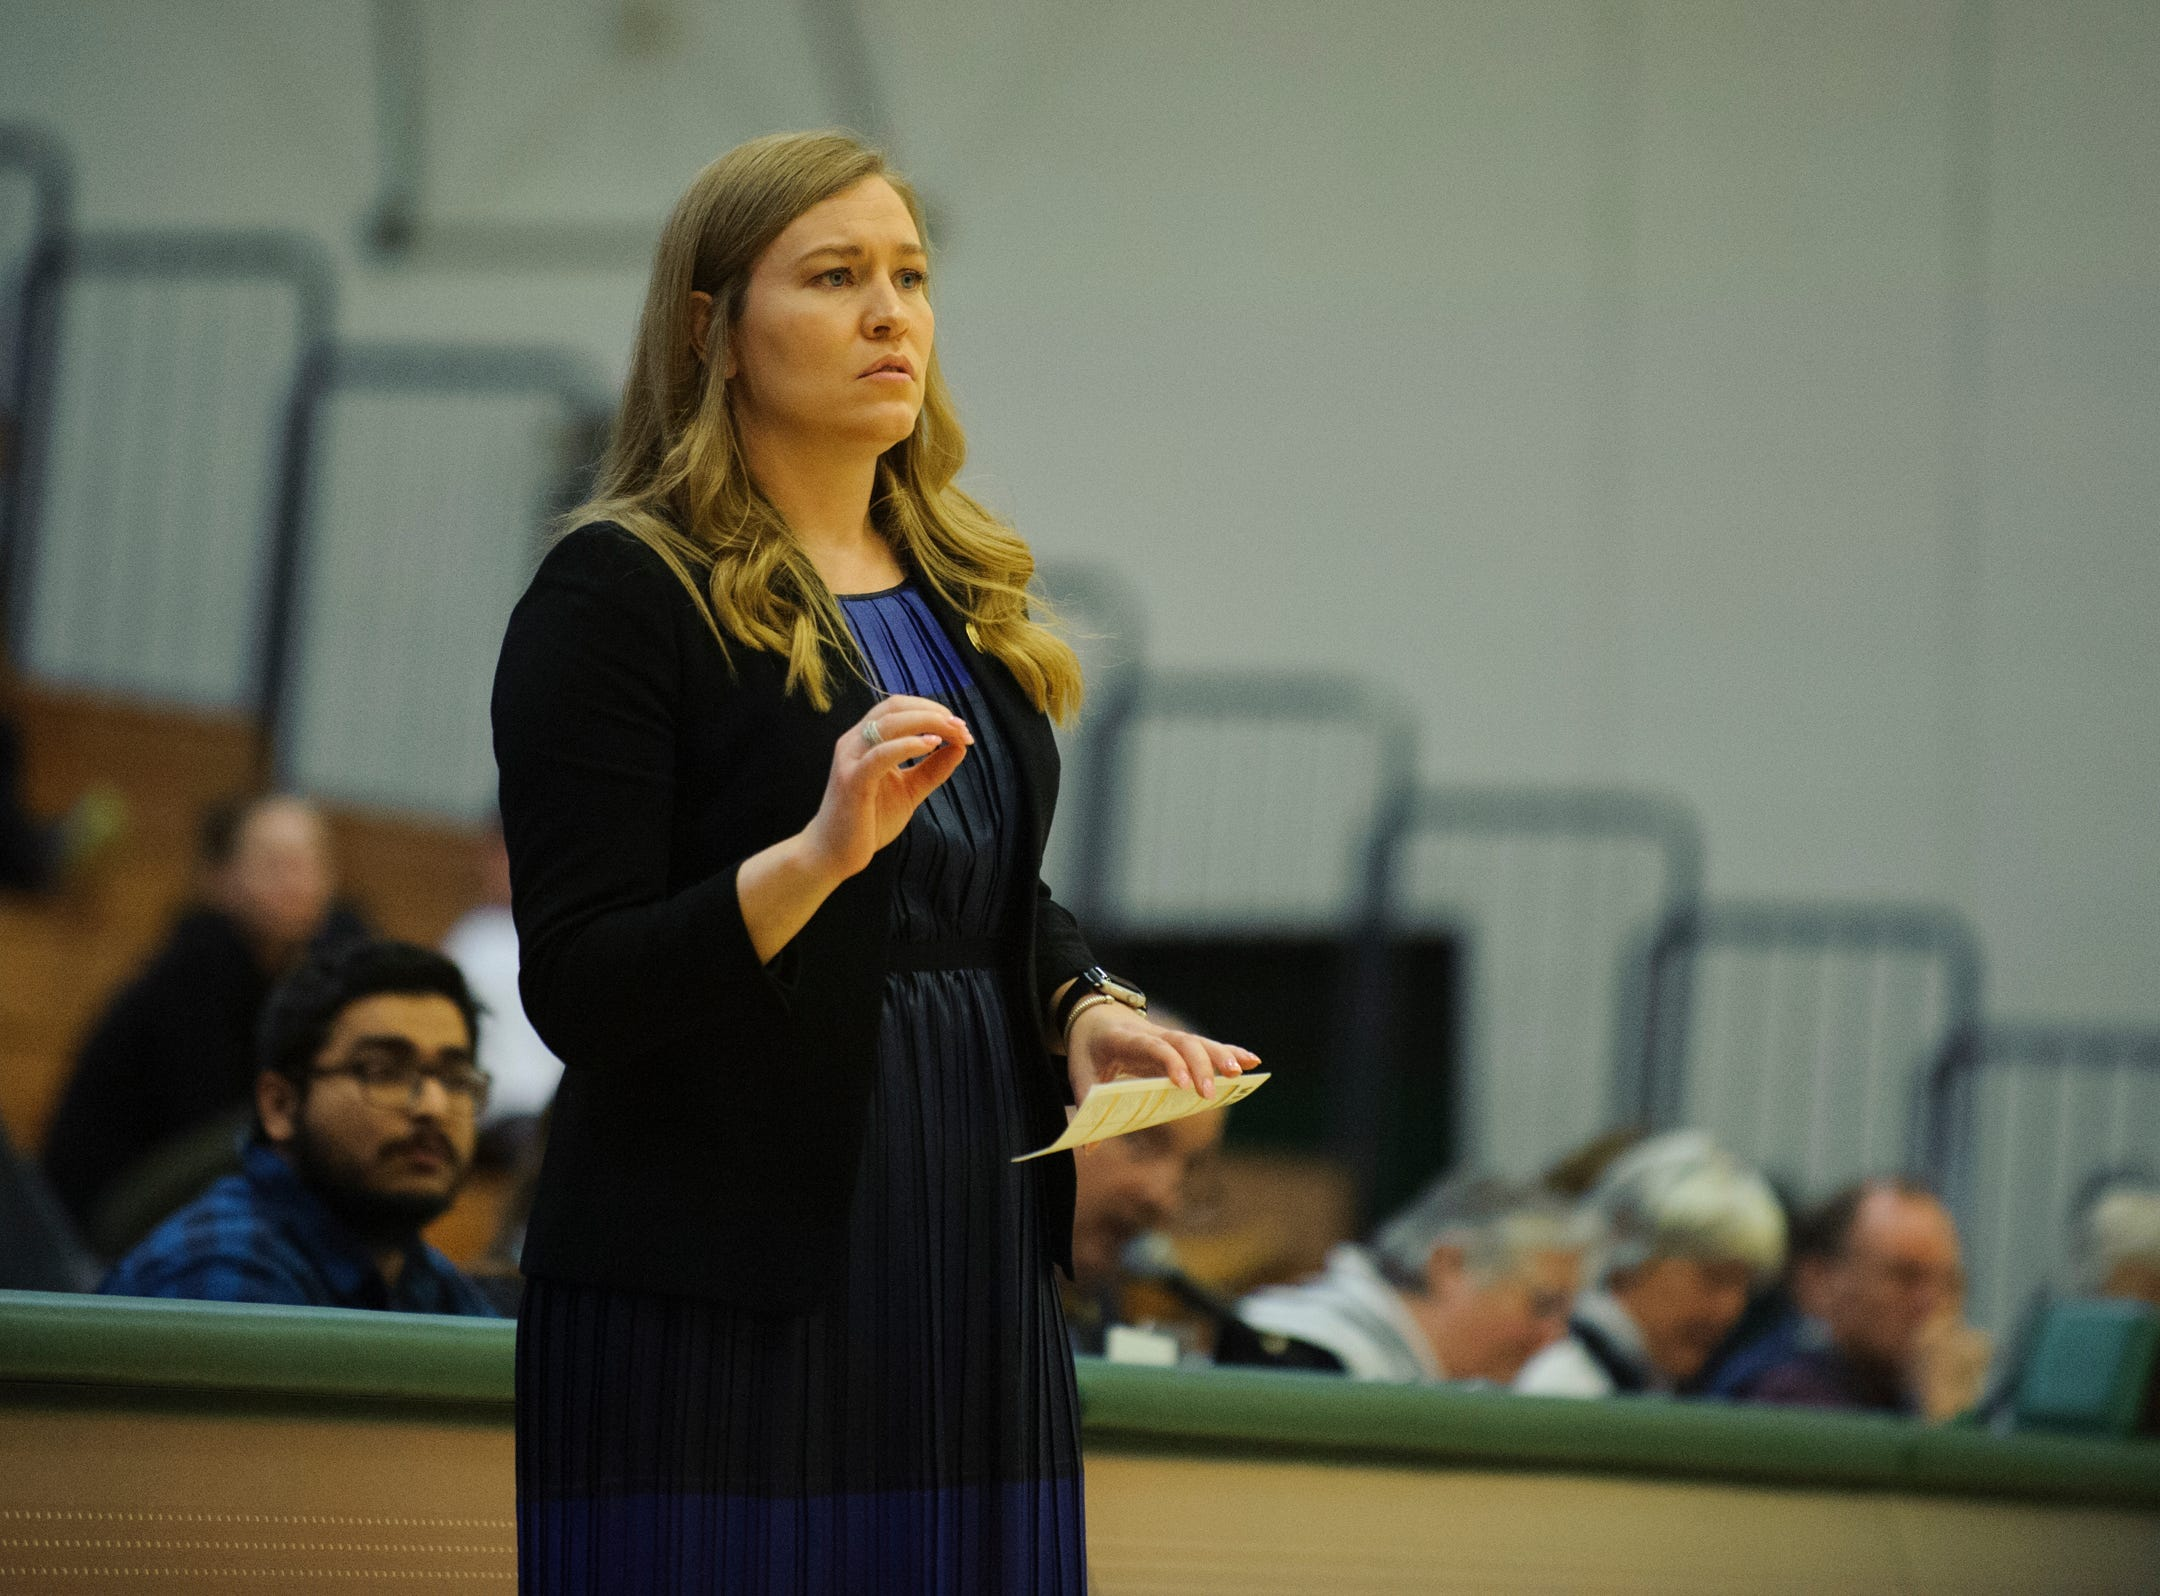 Vermont head coach Alisa Kresge watches the action on the court during the women's basketball game between the Holy Cross Crusaders and the Vermont Catamounts at Patrick Gym on Wednesday night November 28, 2018 in Burlington.